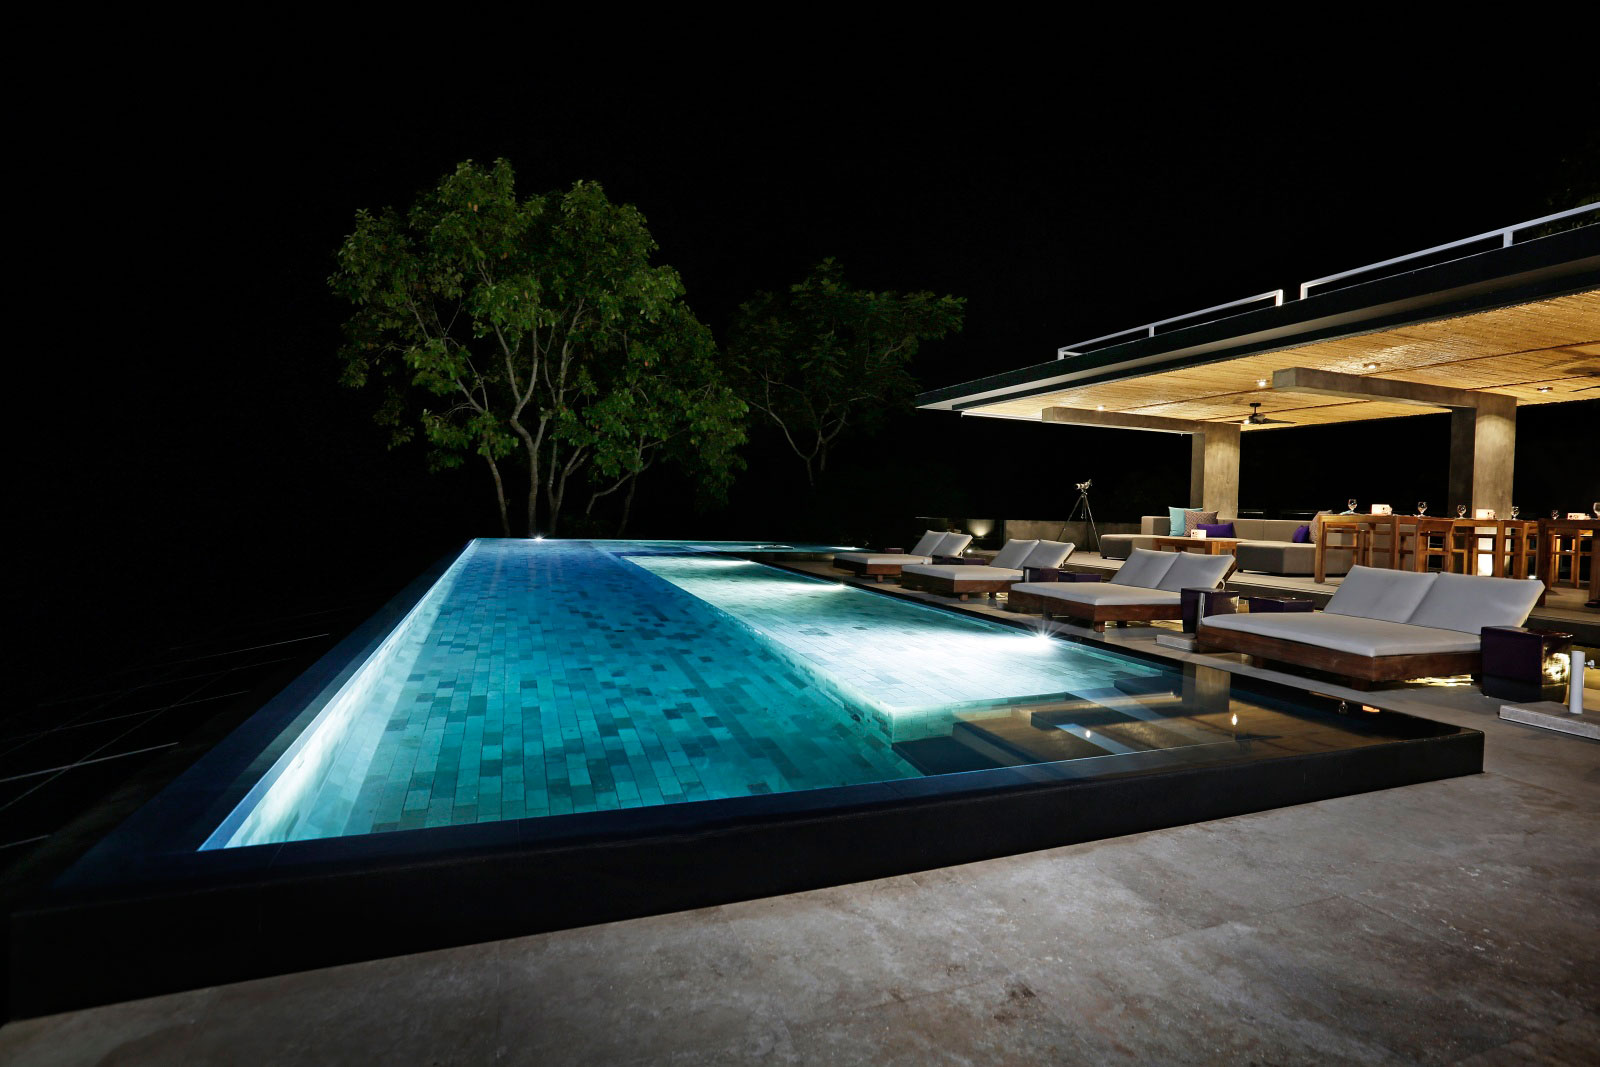 Pool, Lighting, Holiday Villas in Costa Rica